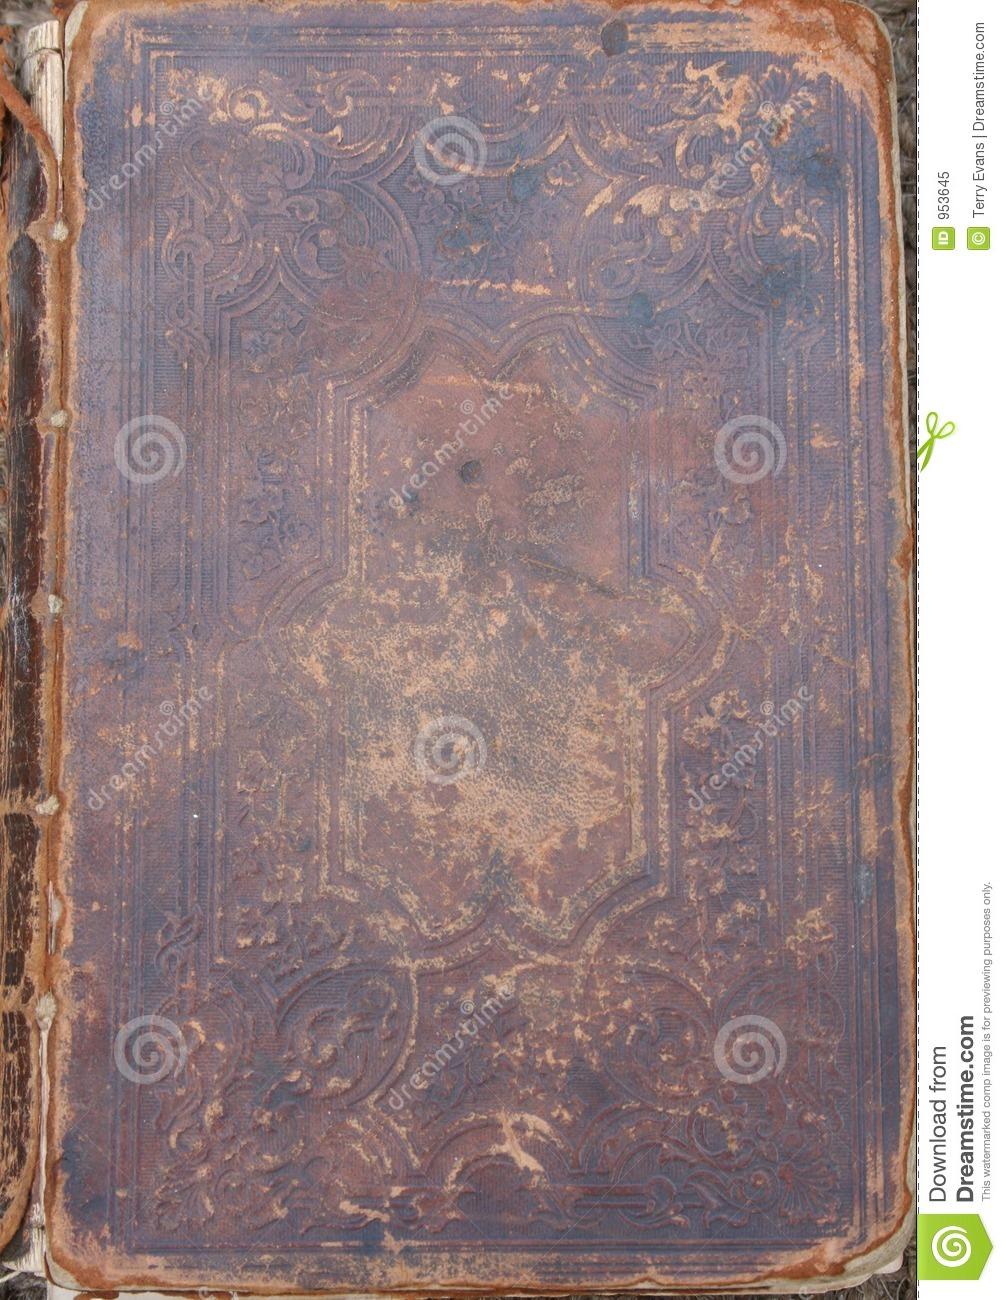 Distressed Leather Grungy Background Stock Image